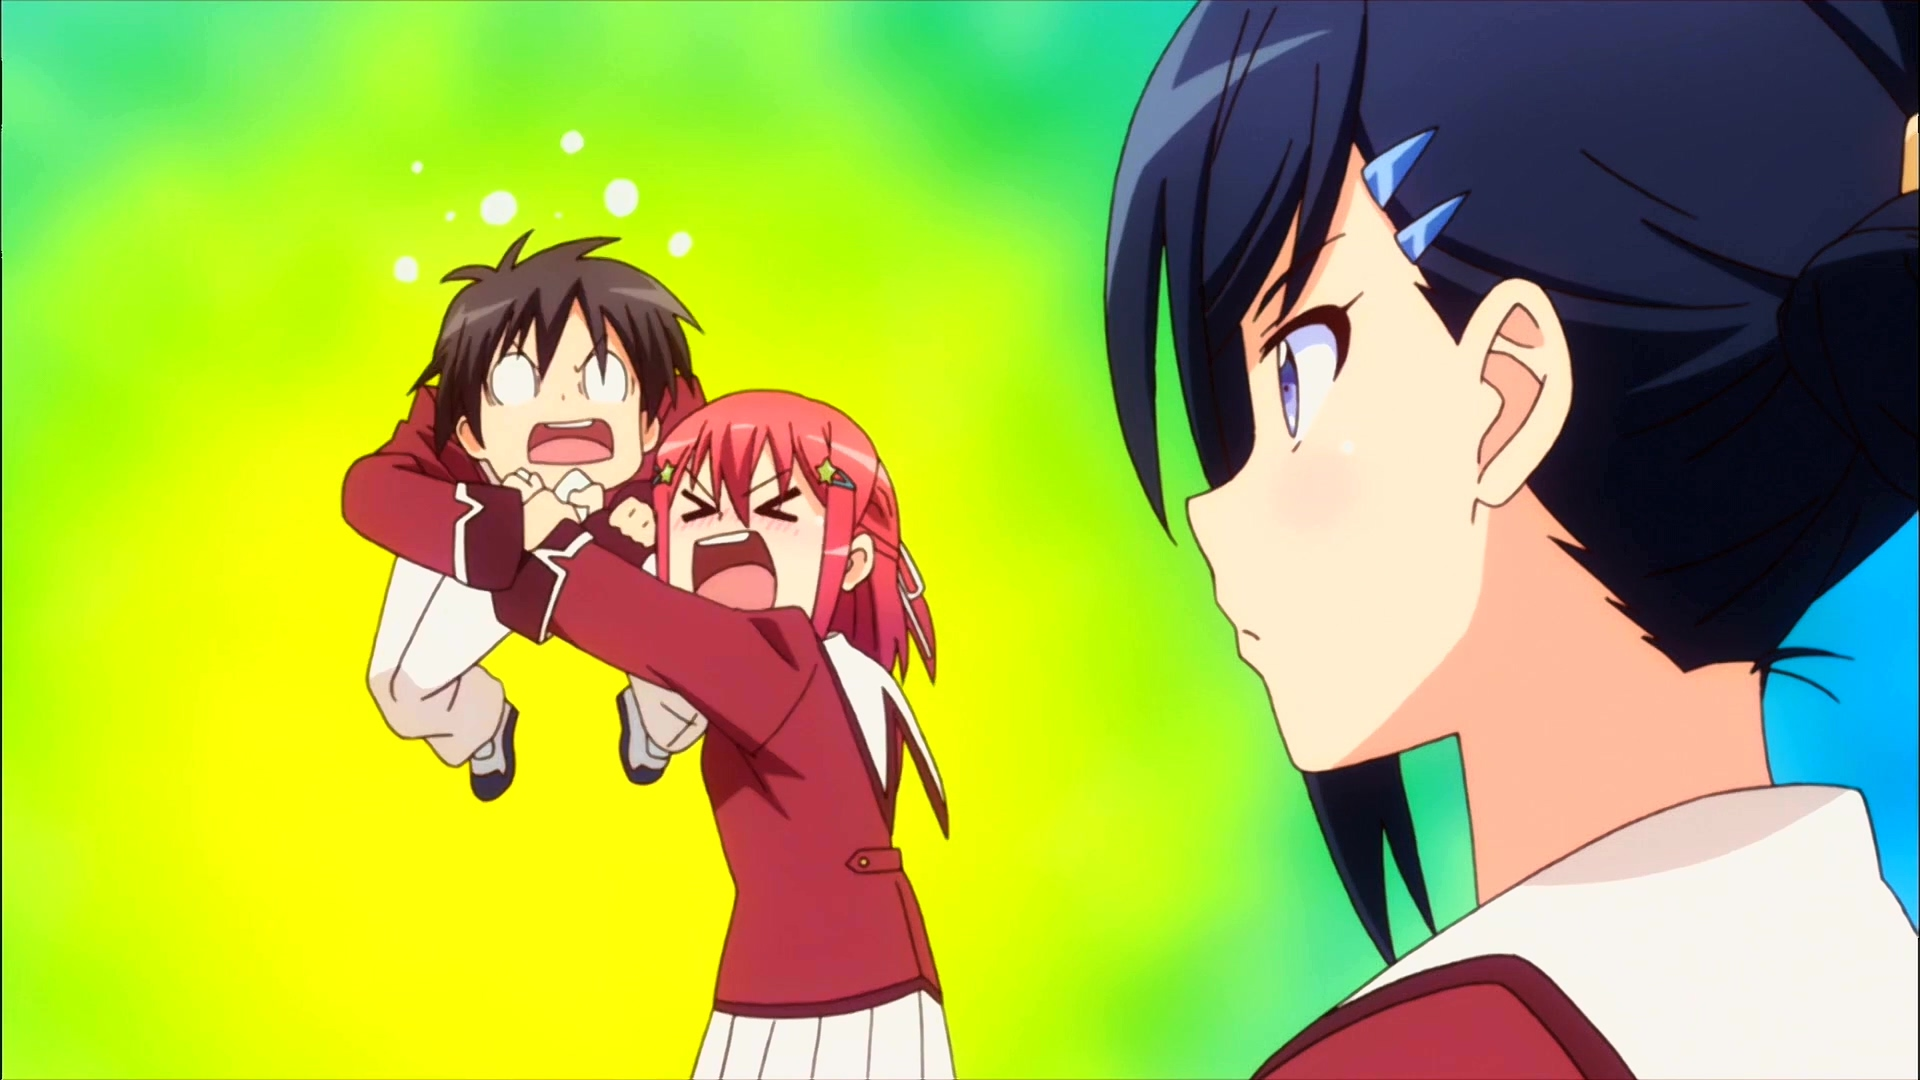 [HorribleSubs] Inou Battle wa Nichijou-kei no Naka de - 02 [1080p].mkv_20141019_004800.625.jpg